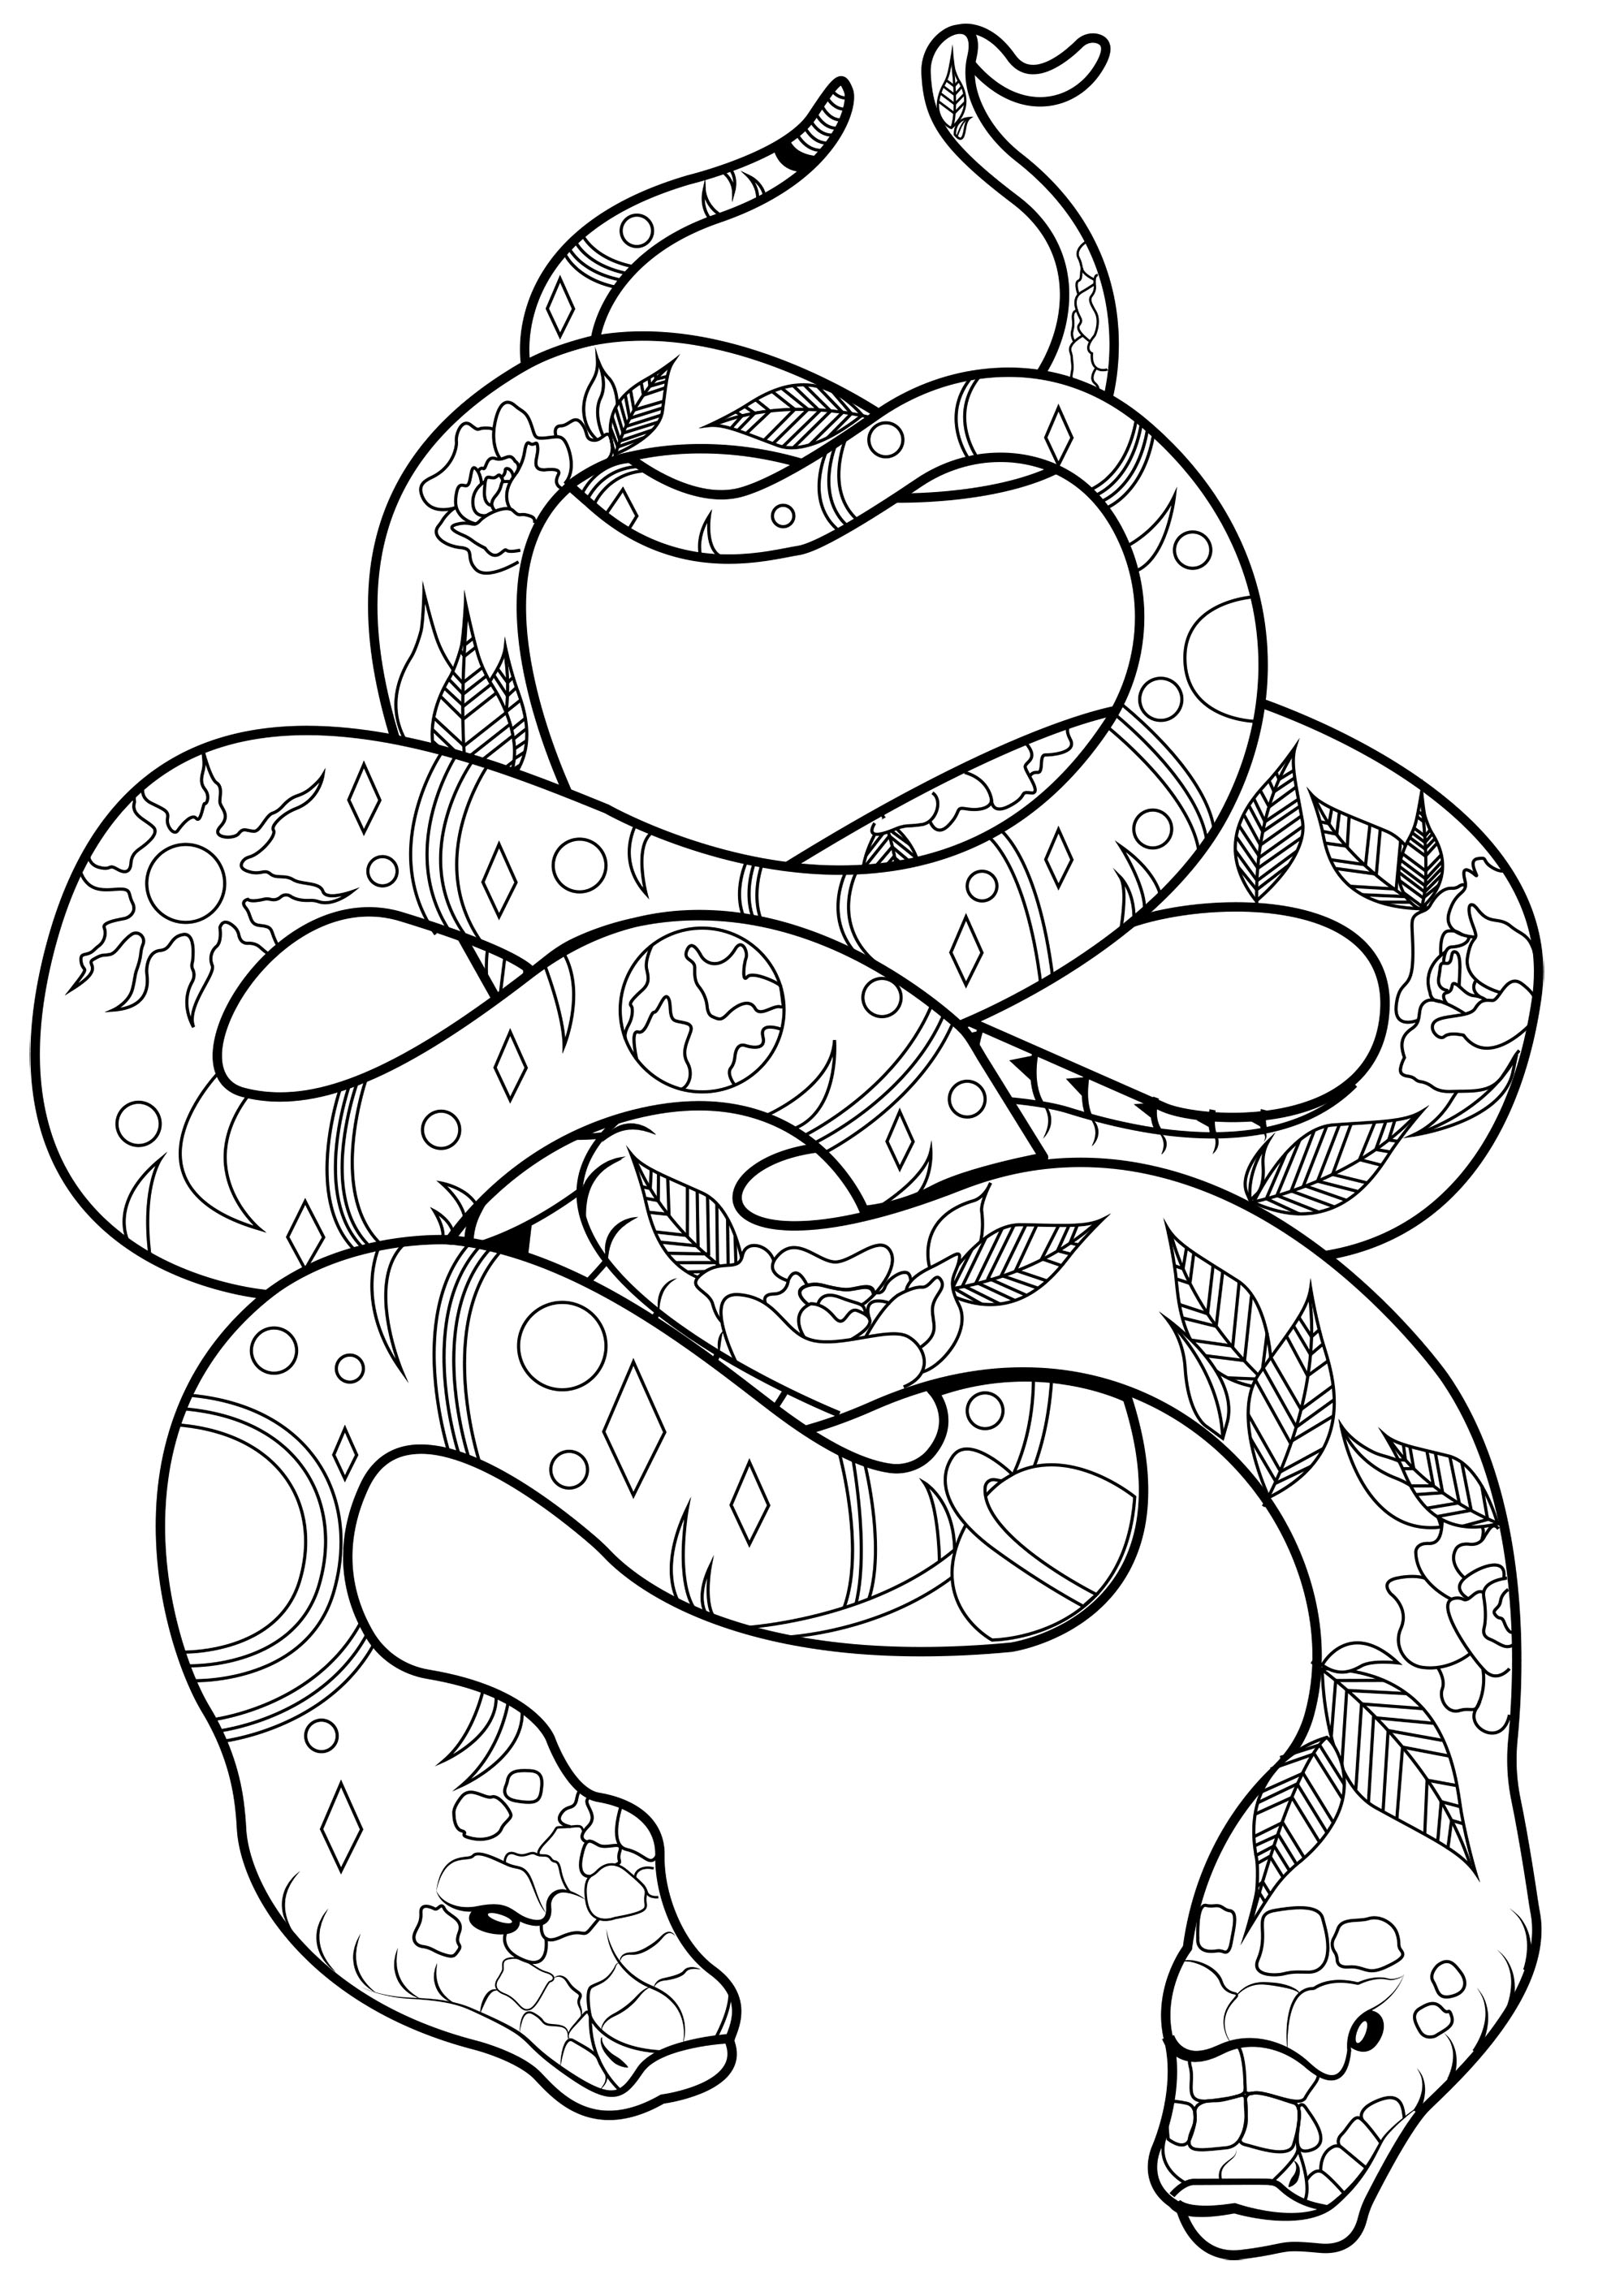 Two Snakes With Patterns Snakes Adult Coloring Pages